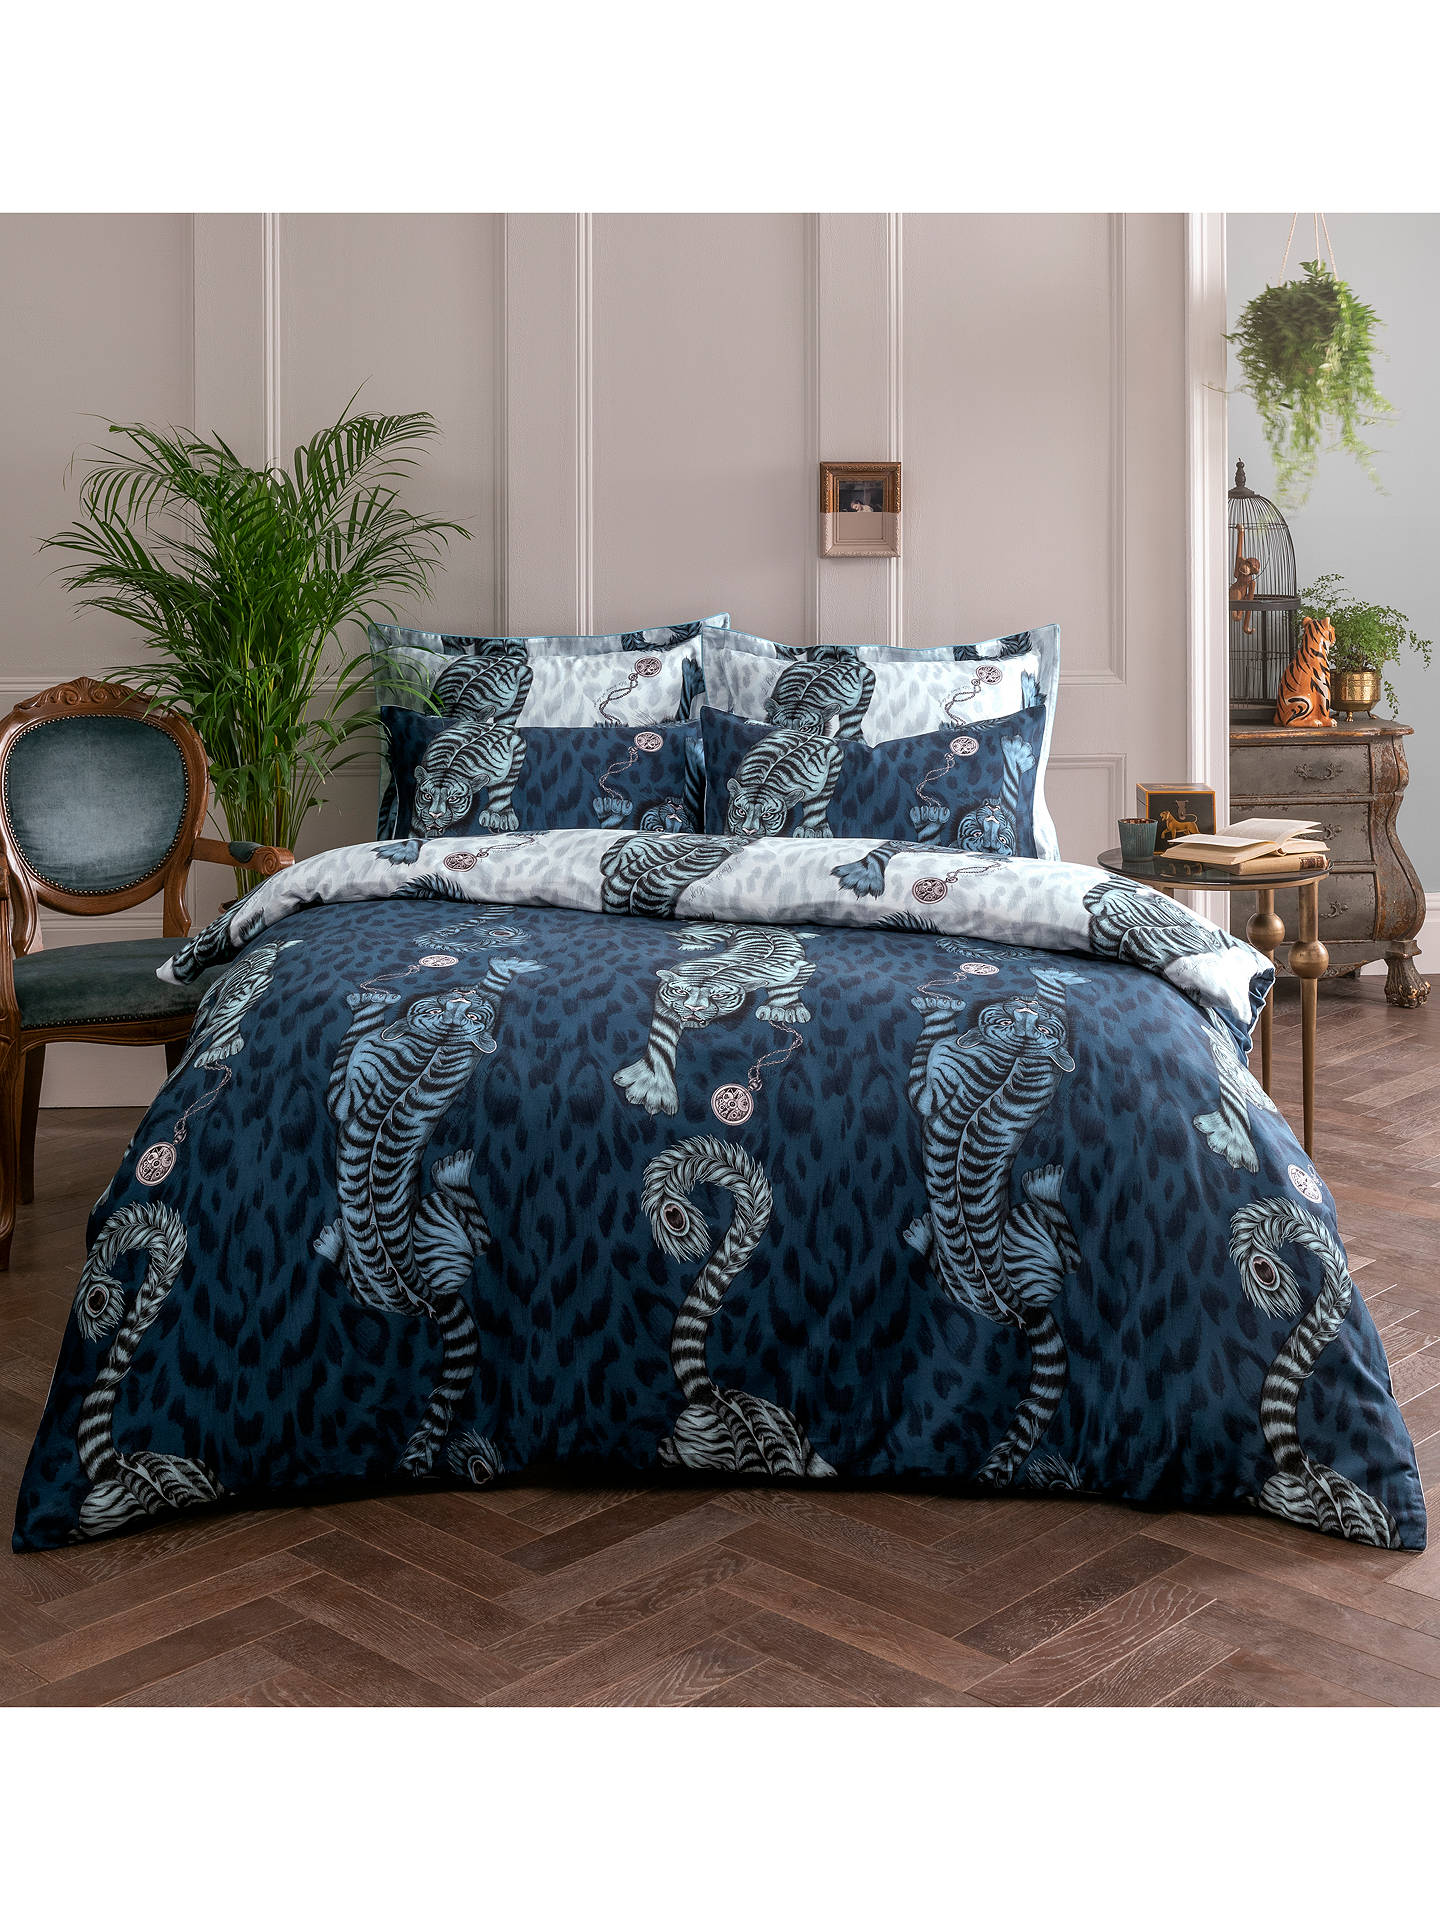 Buy Emma J Shipley Tigris Double Duvet Cover, Blue Online at johnlewis.com